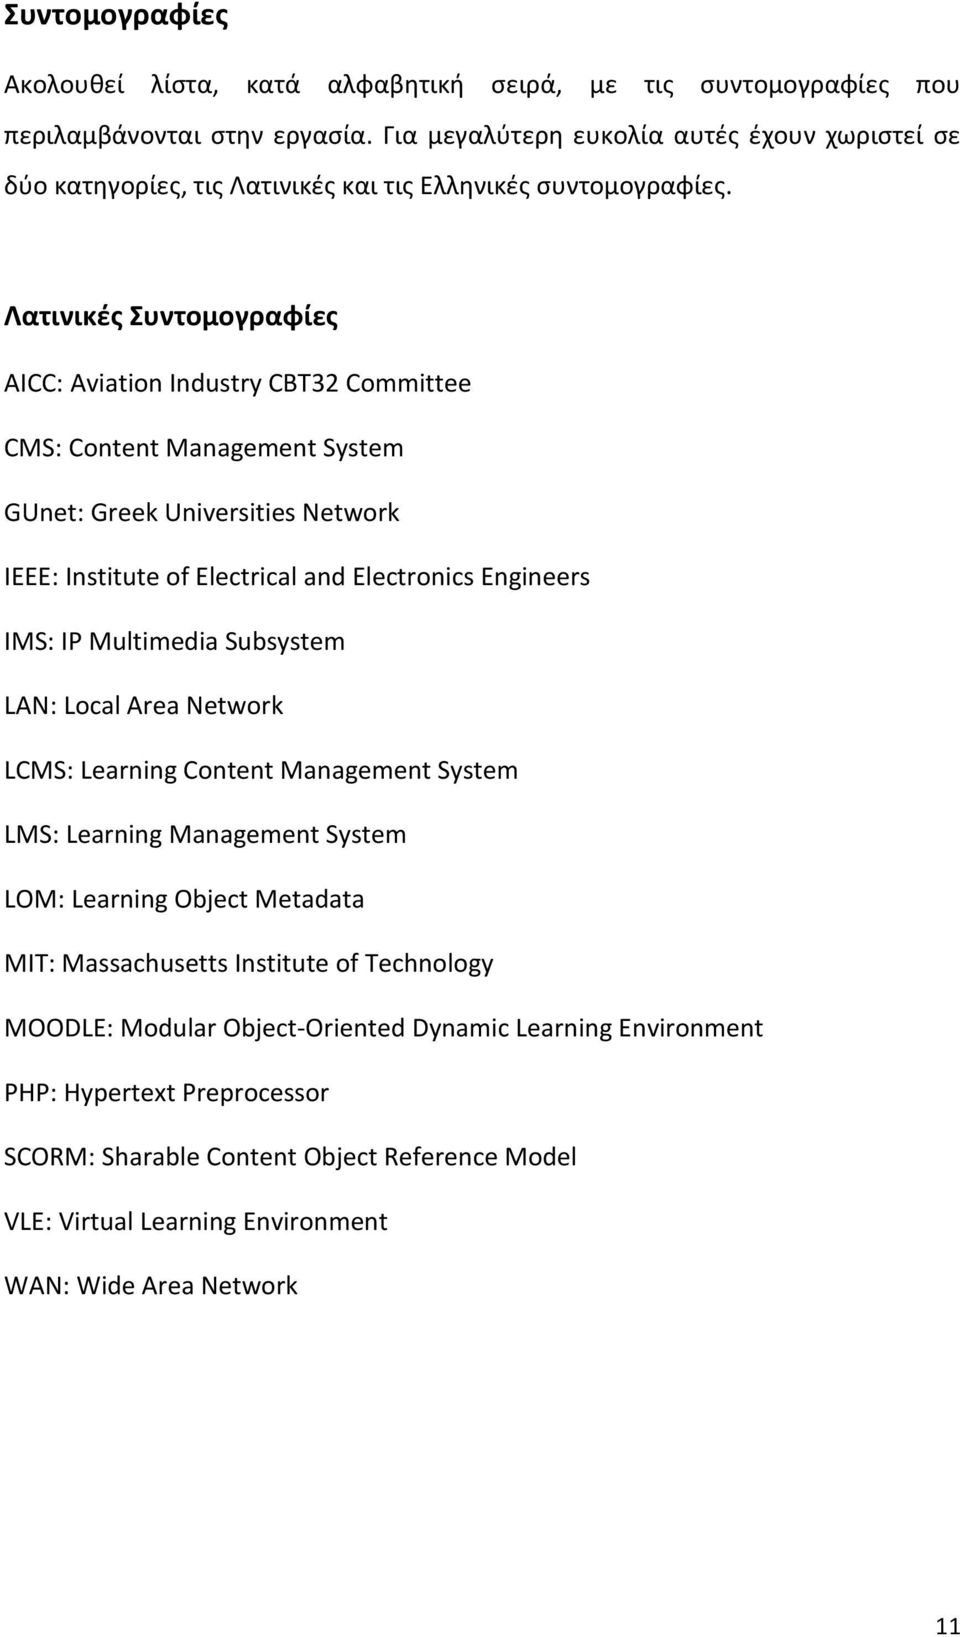 Λατινικές Συντομογραφίες AICC: Aviation Industry CBT32 Committee CMS: Content Management System GUnet: Greek Universities Network IEEE: Institute of Electrical and Electronics Engineers IMS: IP